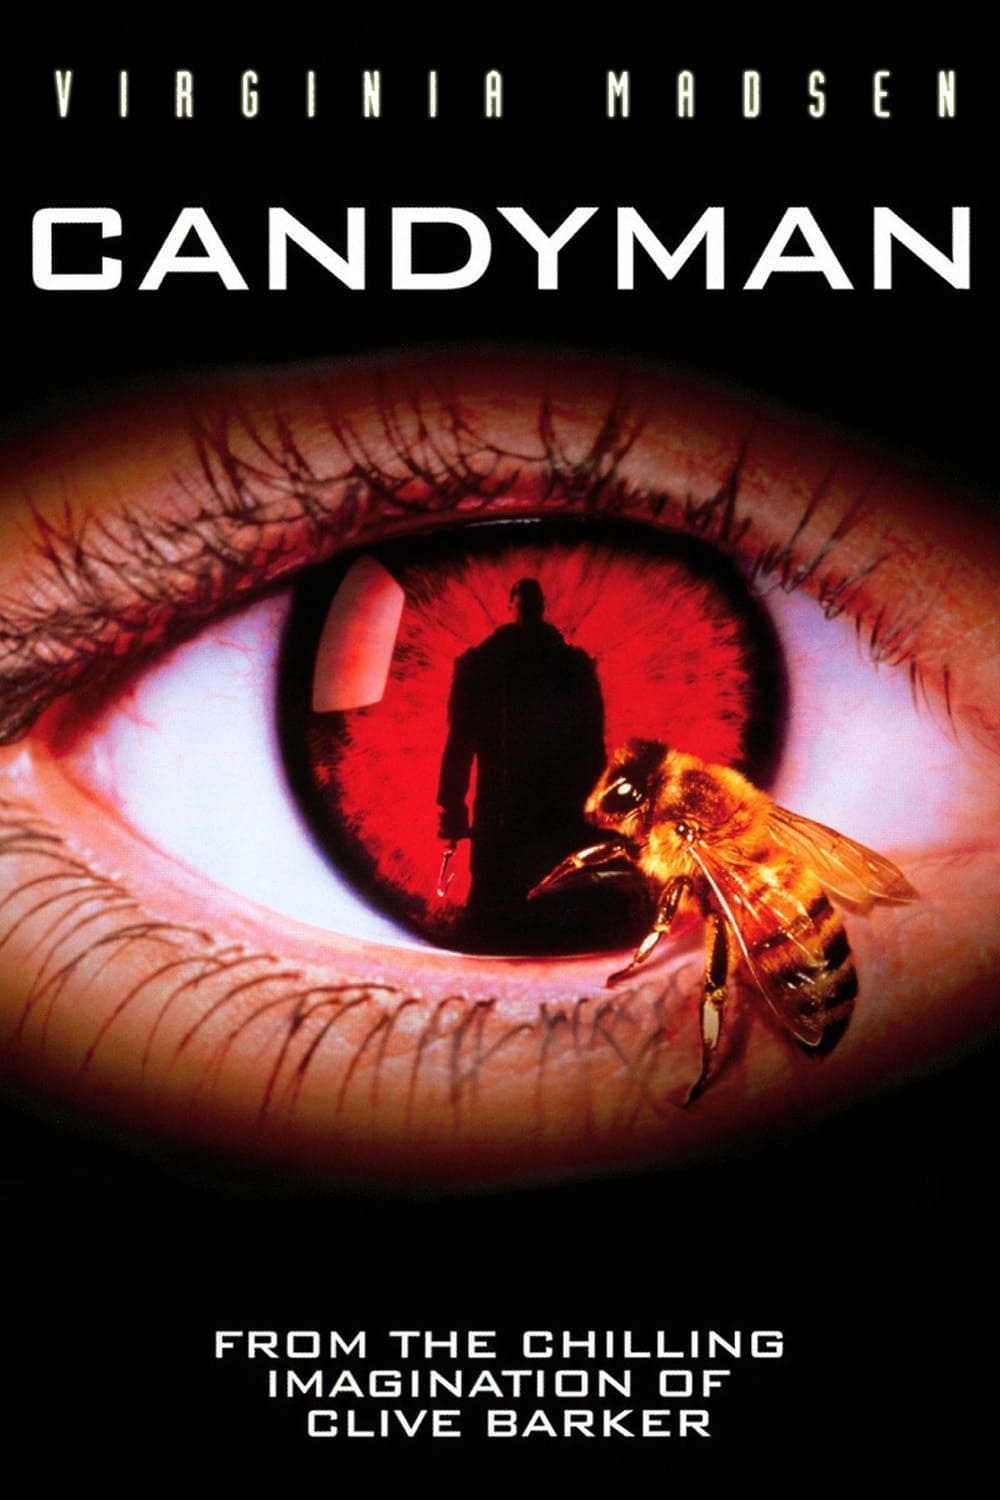 Candyman  (1992) - Directed by: Bernard RoseStarring: Virginia Madsen, Tony Todd, Venessa Williams, Kasi LemmonsRated: R for Violence and GoreRunning Time: 1 h 39 mTMM Score: 3 stars out of 5STRENGTHS: Themes, Twist on Familiar StoryWEAKNESSES: Acting, Cheesy and Dated Moments